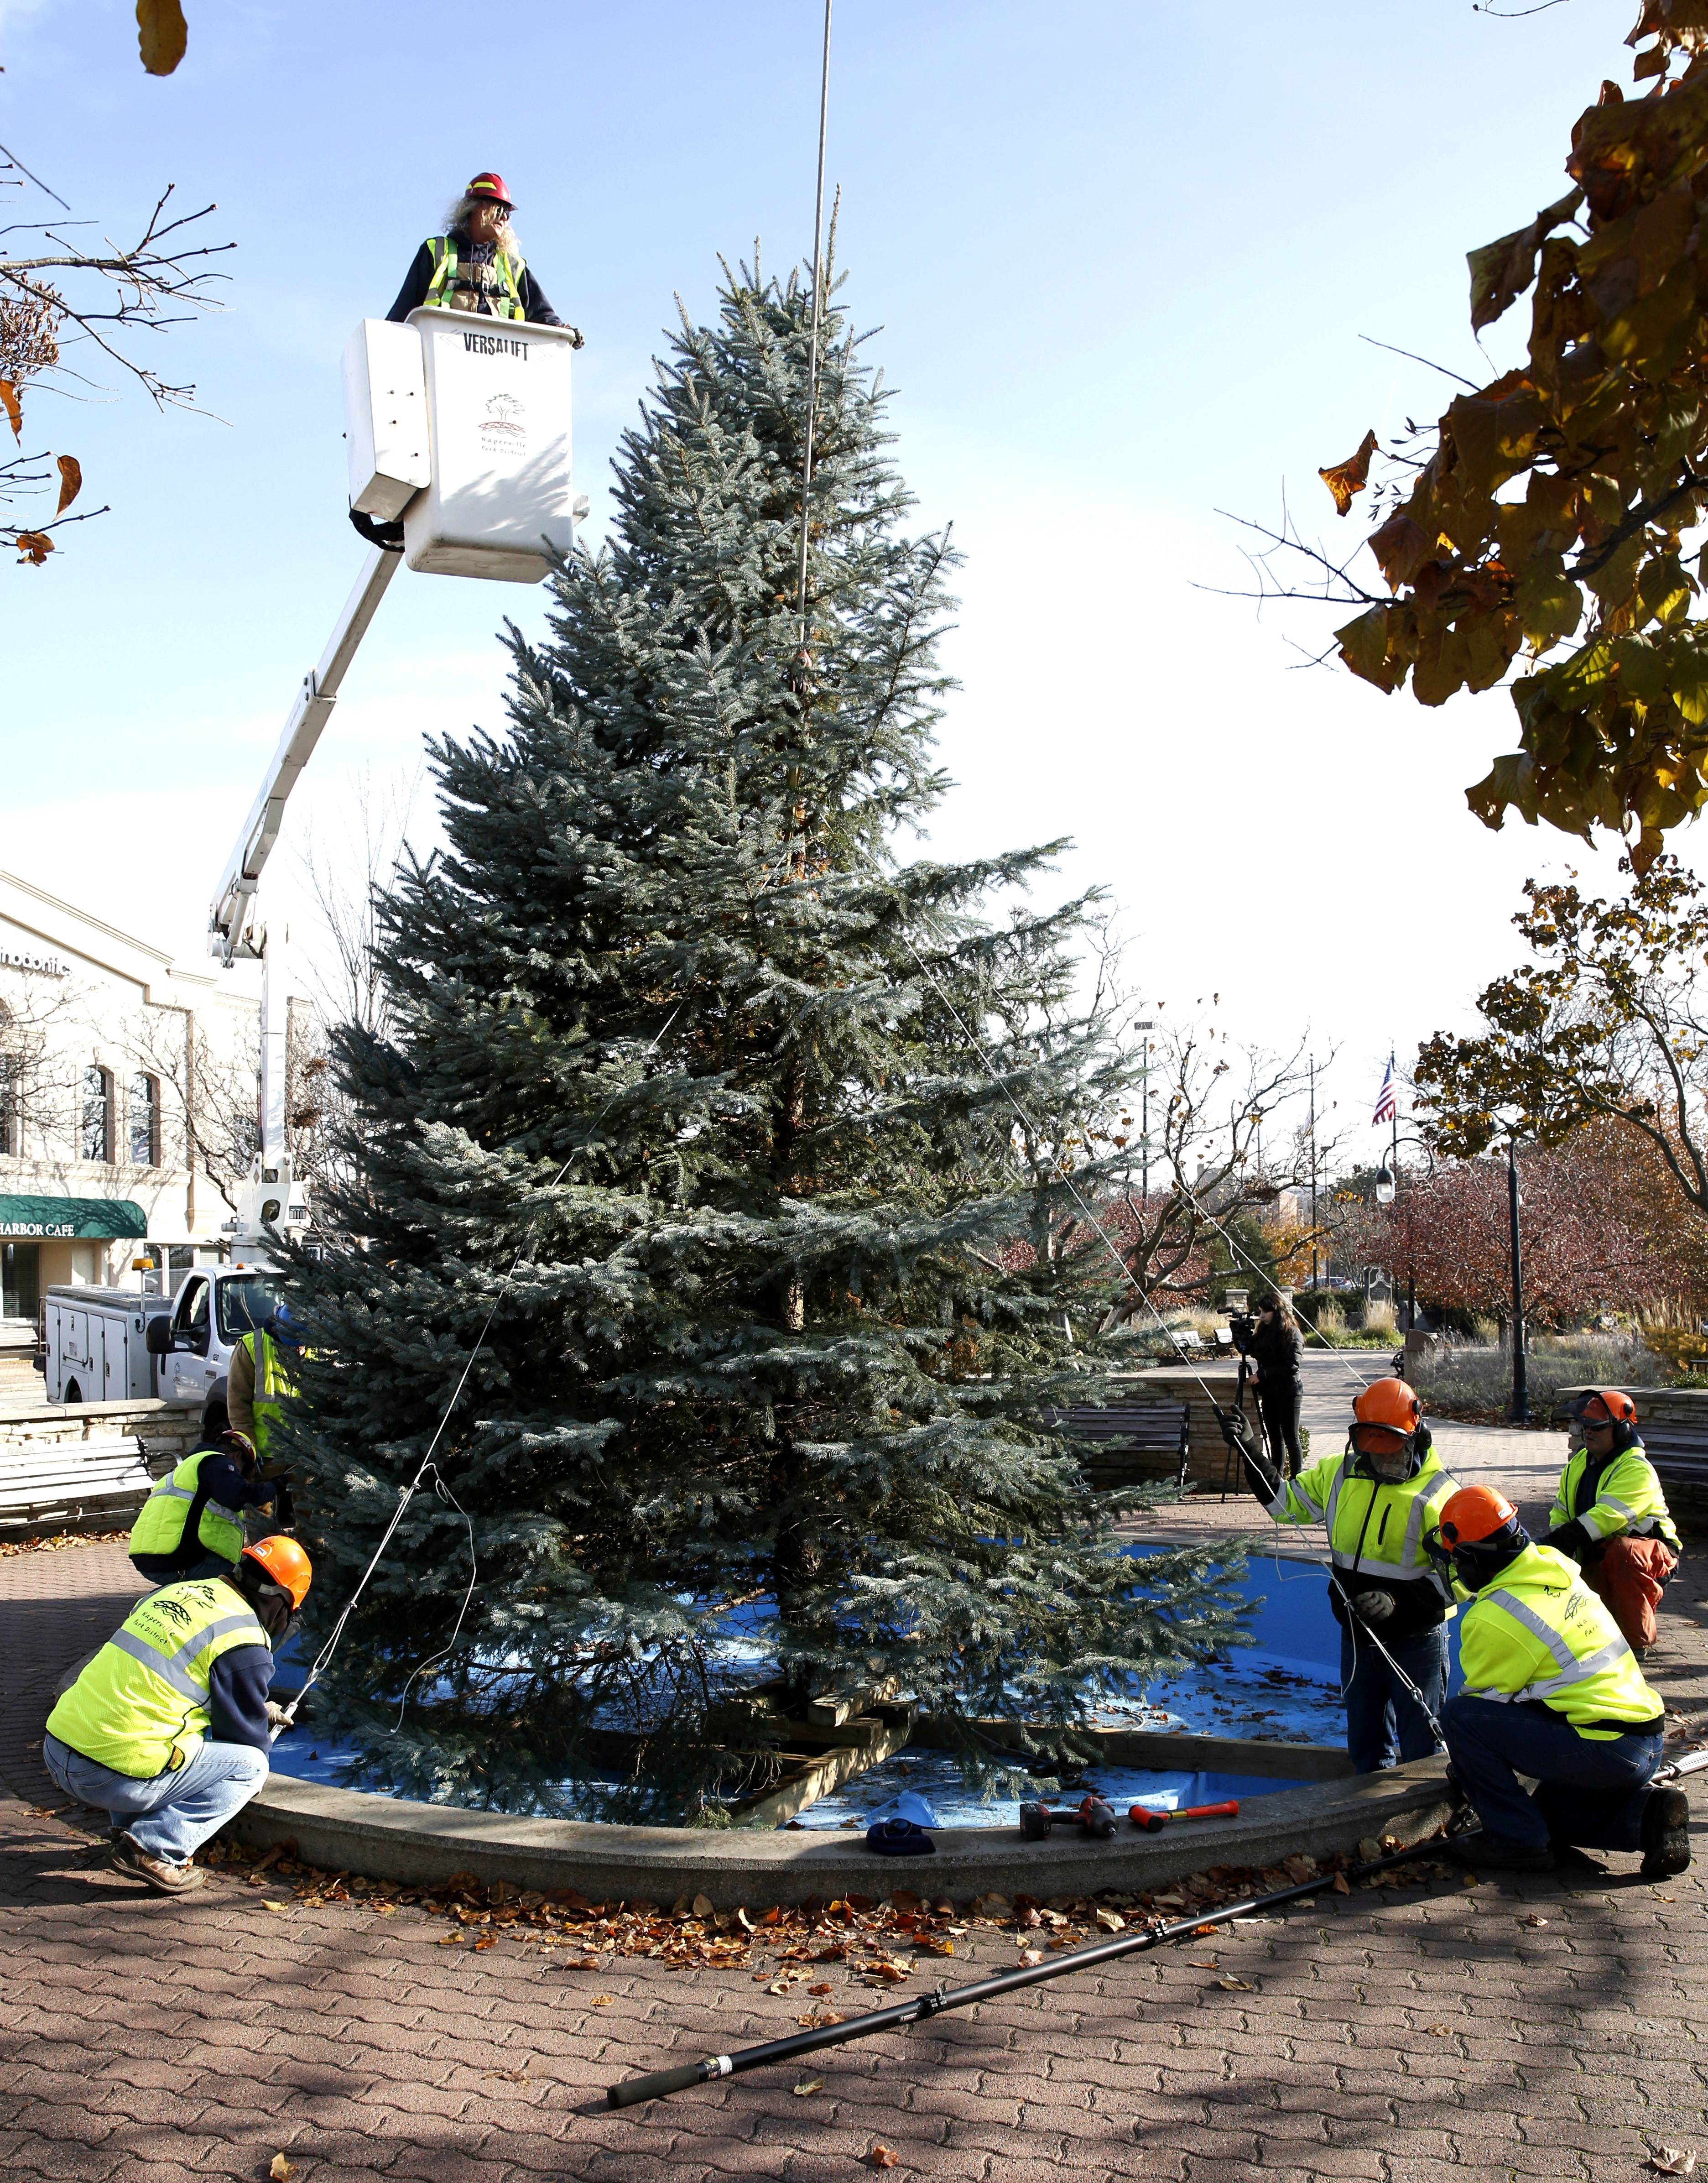 A Naperville Park District crew places the city's Christmas tree in the Dandelion Fountain along the downtown Riverwalk. The 21-foot-tall blue spruce will be lighted after Thanksgiving.